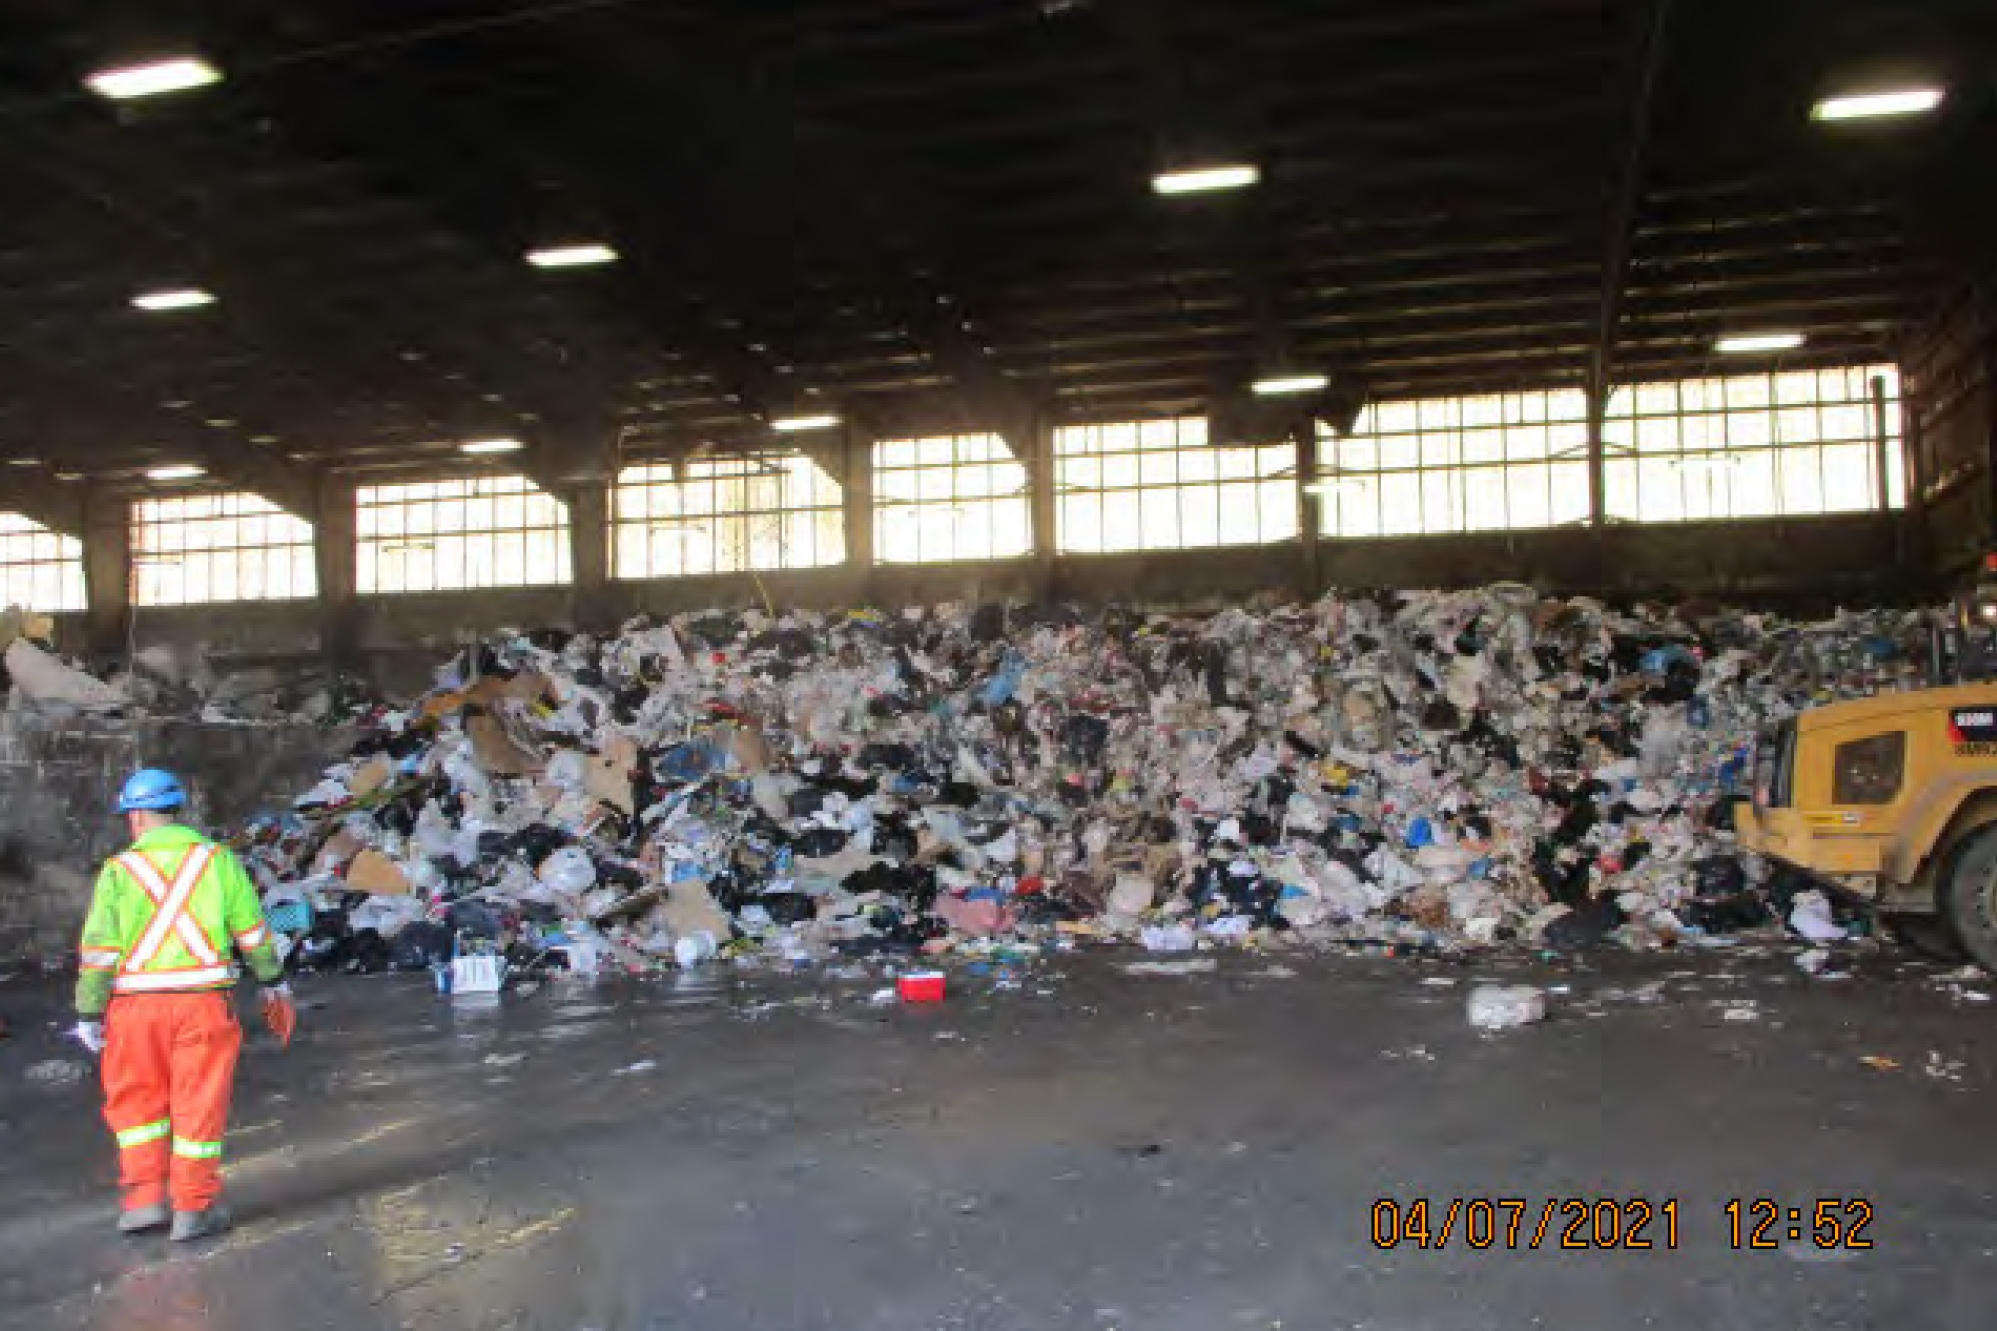 In a grainy photo, time-stamped April 7, 2021 at 12:52, a big pile of garbage is seen stacked in a warehouse-type room with lights on the ceiling and windows in the background stretching across the wall. On the left, a worker wearing high-visibility blue, fluorescent yellow and orange clothing walks toward the garbage. On the right, the rear end of a front-end loader is visible.